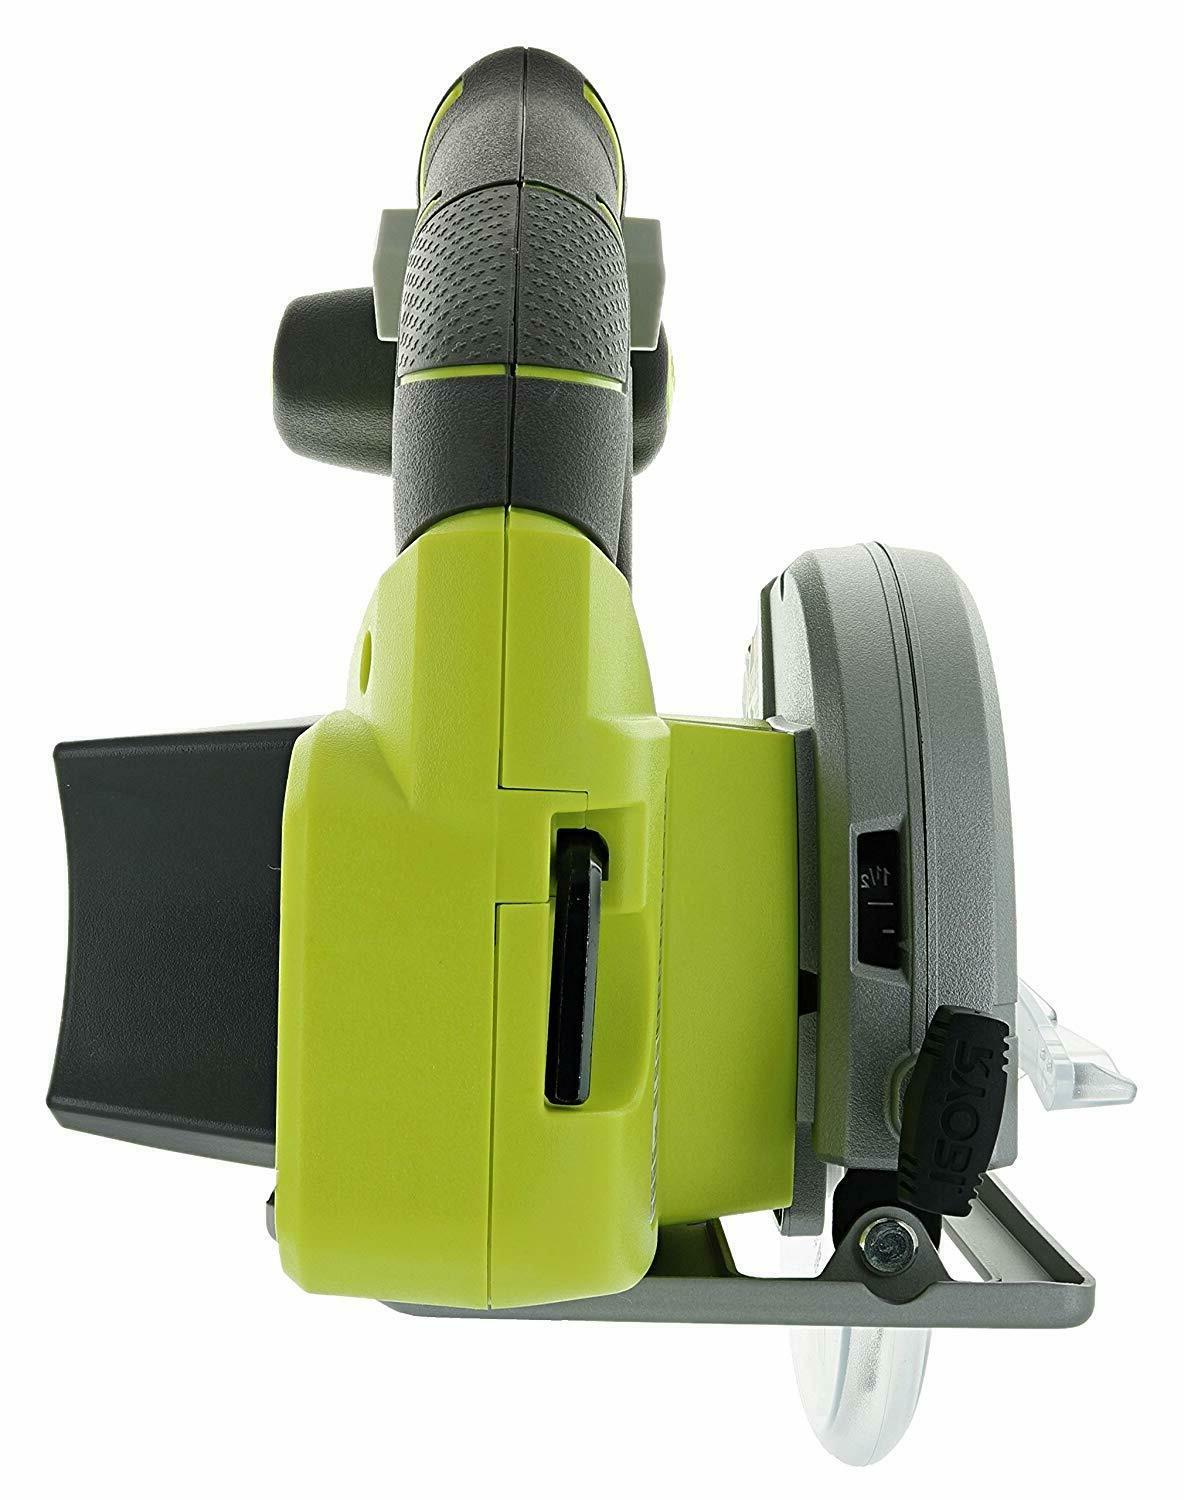 Ryobi with Guide Blade Tools